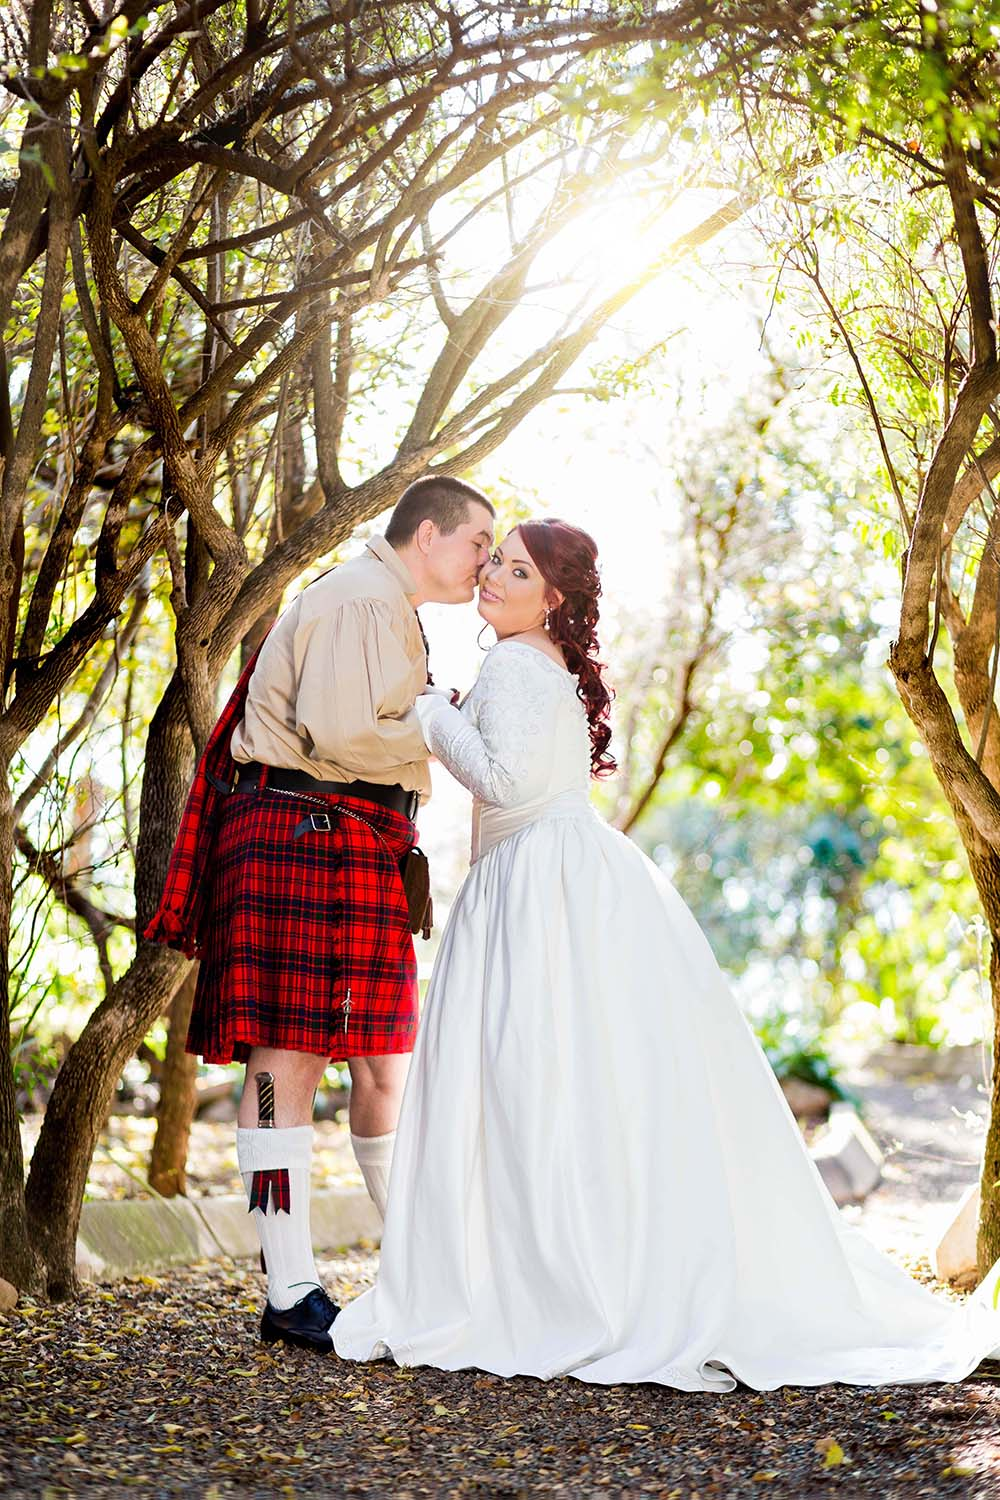 medieval-themed-wedding-medieval-wedding-dgr-photography-castle-wedding-79